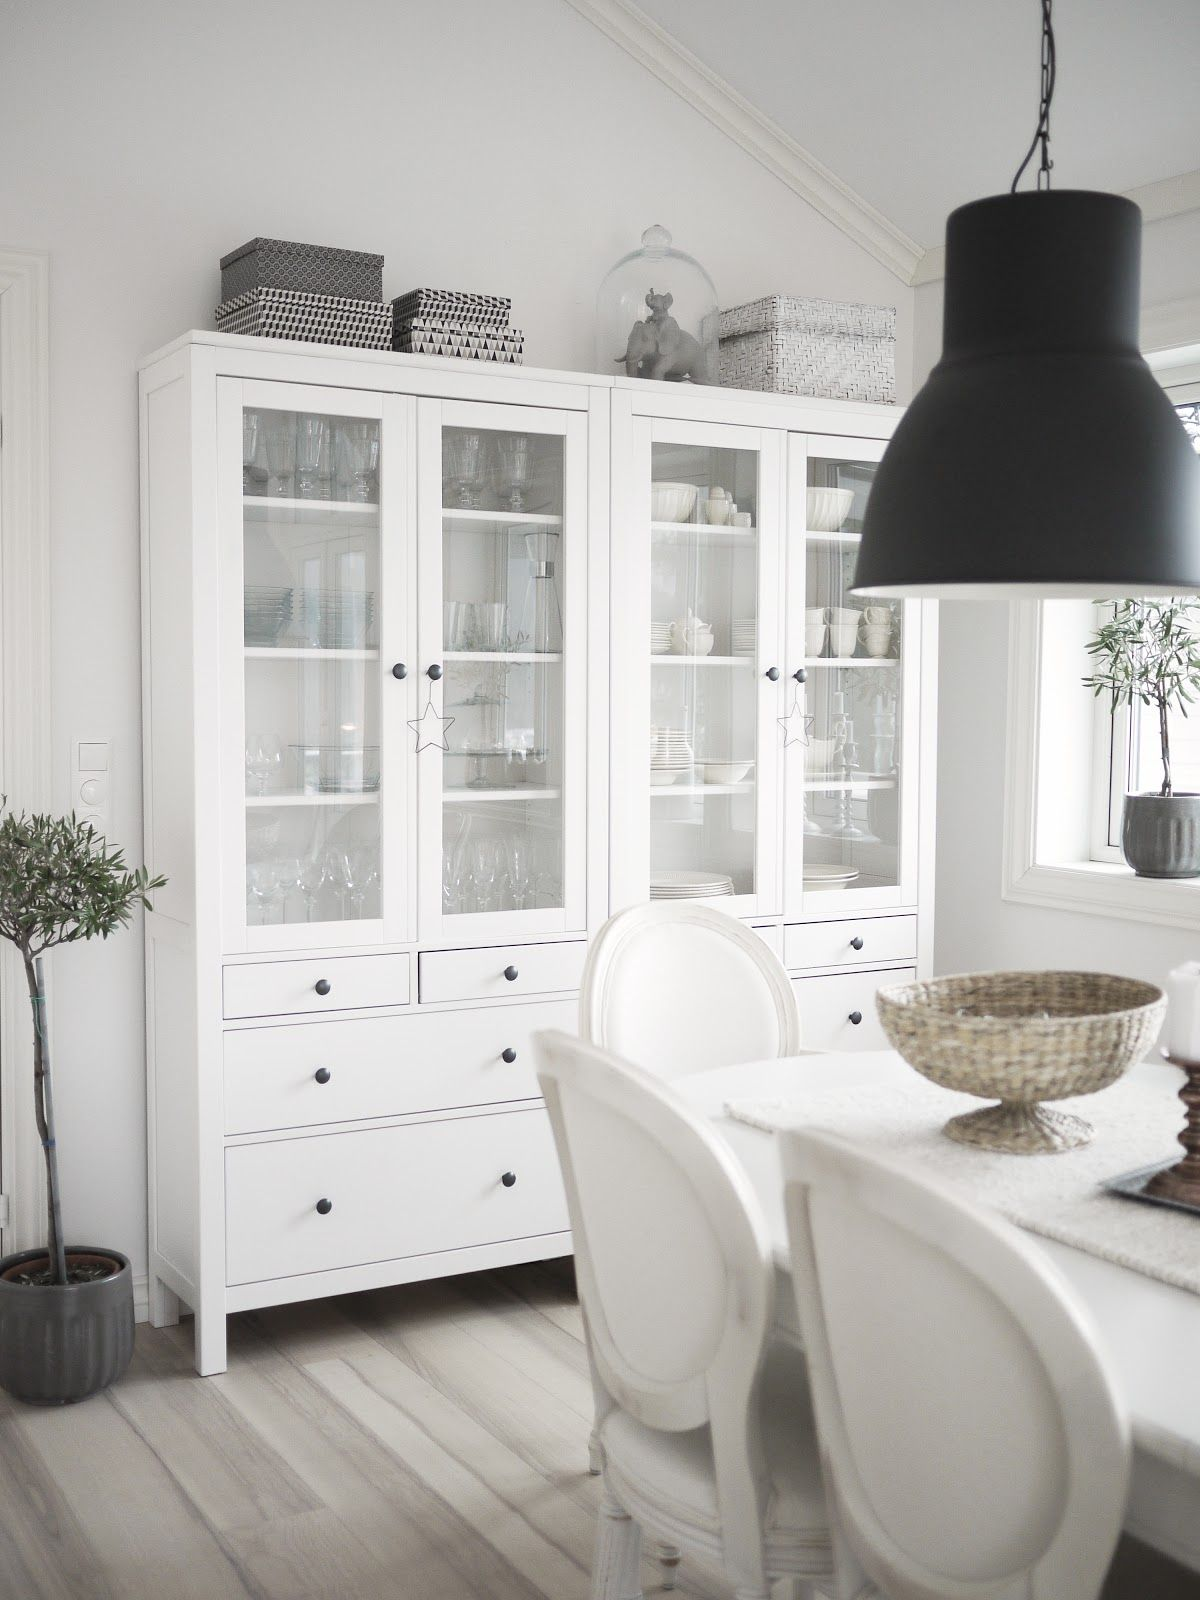 Pin By Casafacile On Living Idee Dal Web Ikea Dining Room Dining Room Storage Ikea Dining